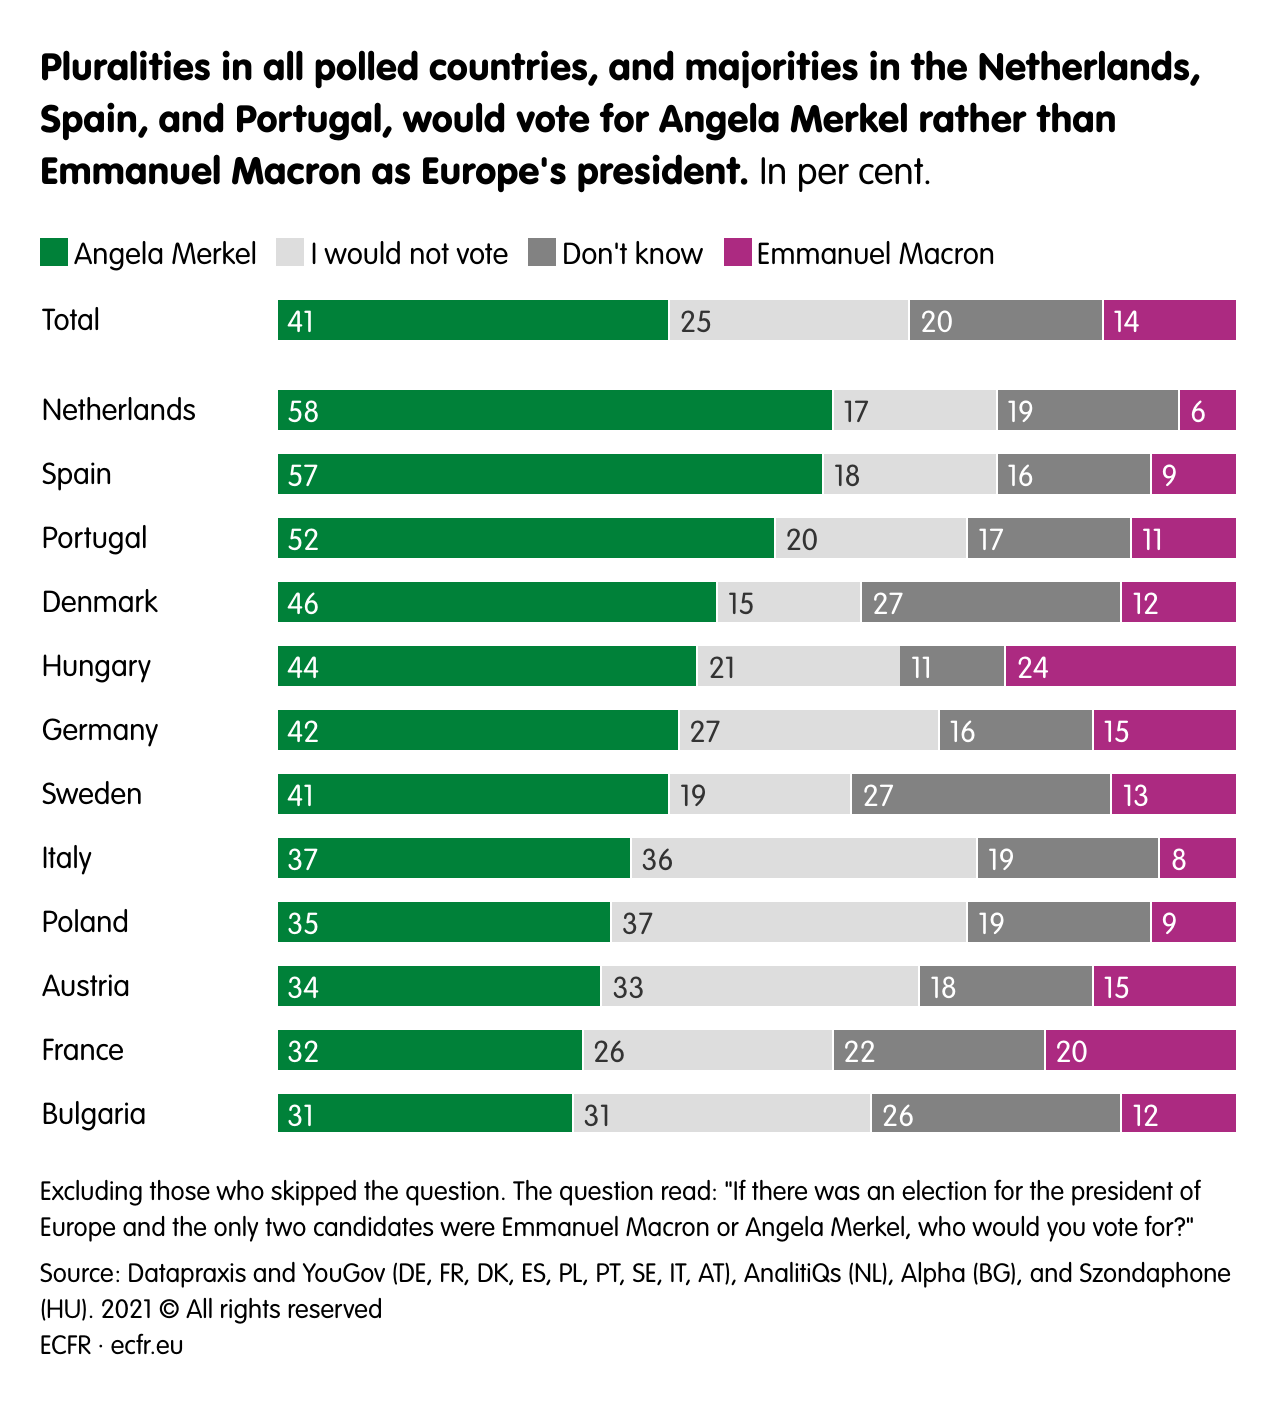 Pluralities in all polled countries, and majorities in the Netherlands, Spain, and Portugal, would vote for Angela Merkel rather than Emmanuel Macron as Europe's president.